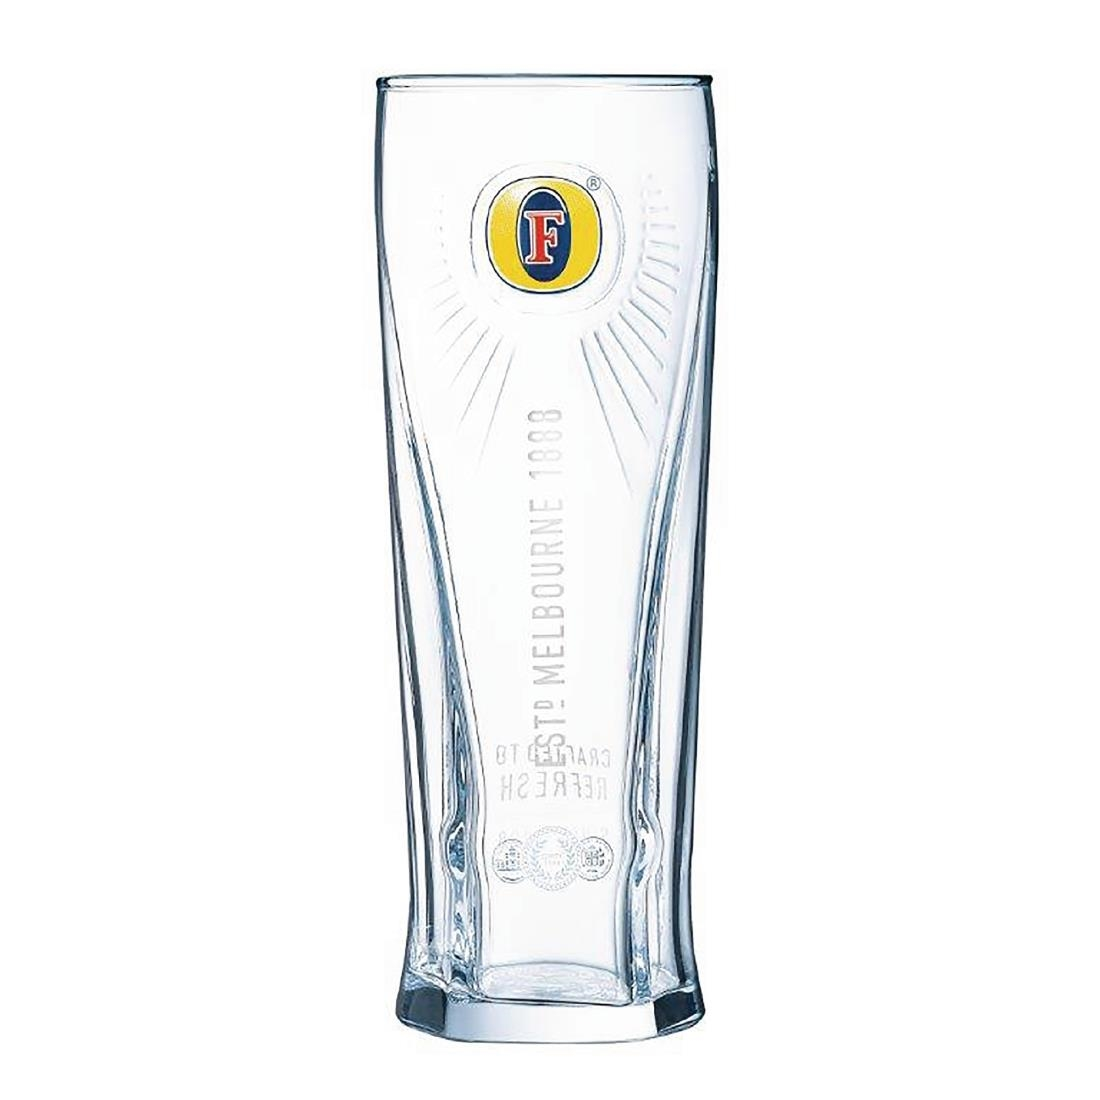 Image of Arcoroc Fosters Beer Glasses 570ml CE Marked (Pack of 24) Pack of 24